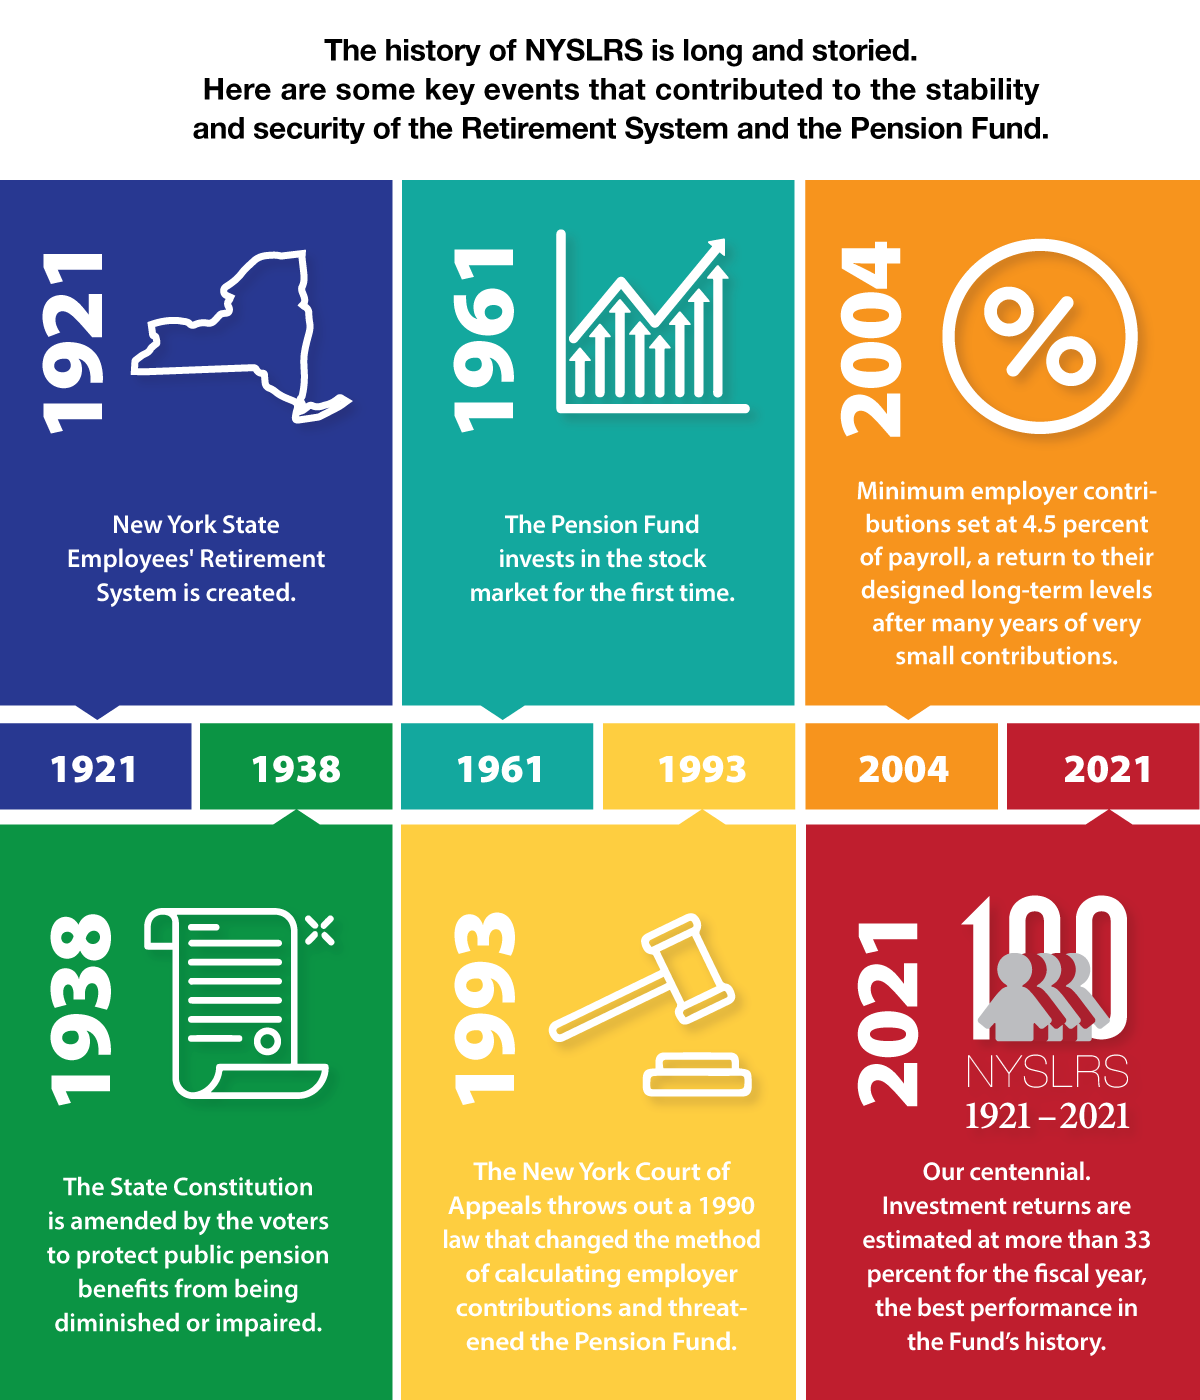 NYSLRS History - key events contributing to the security and stability of the Retirement System and the Fund